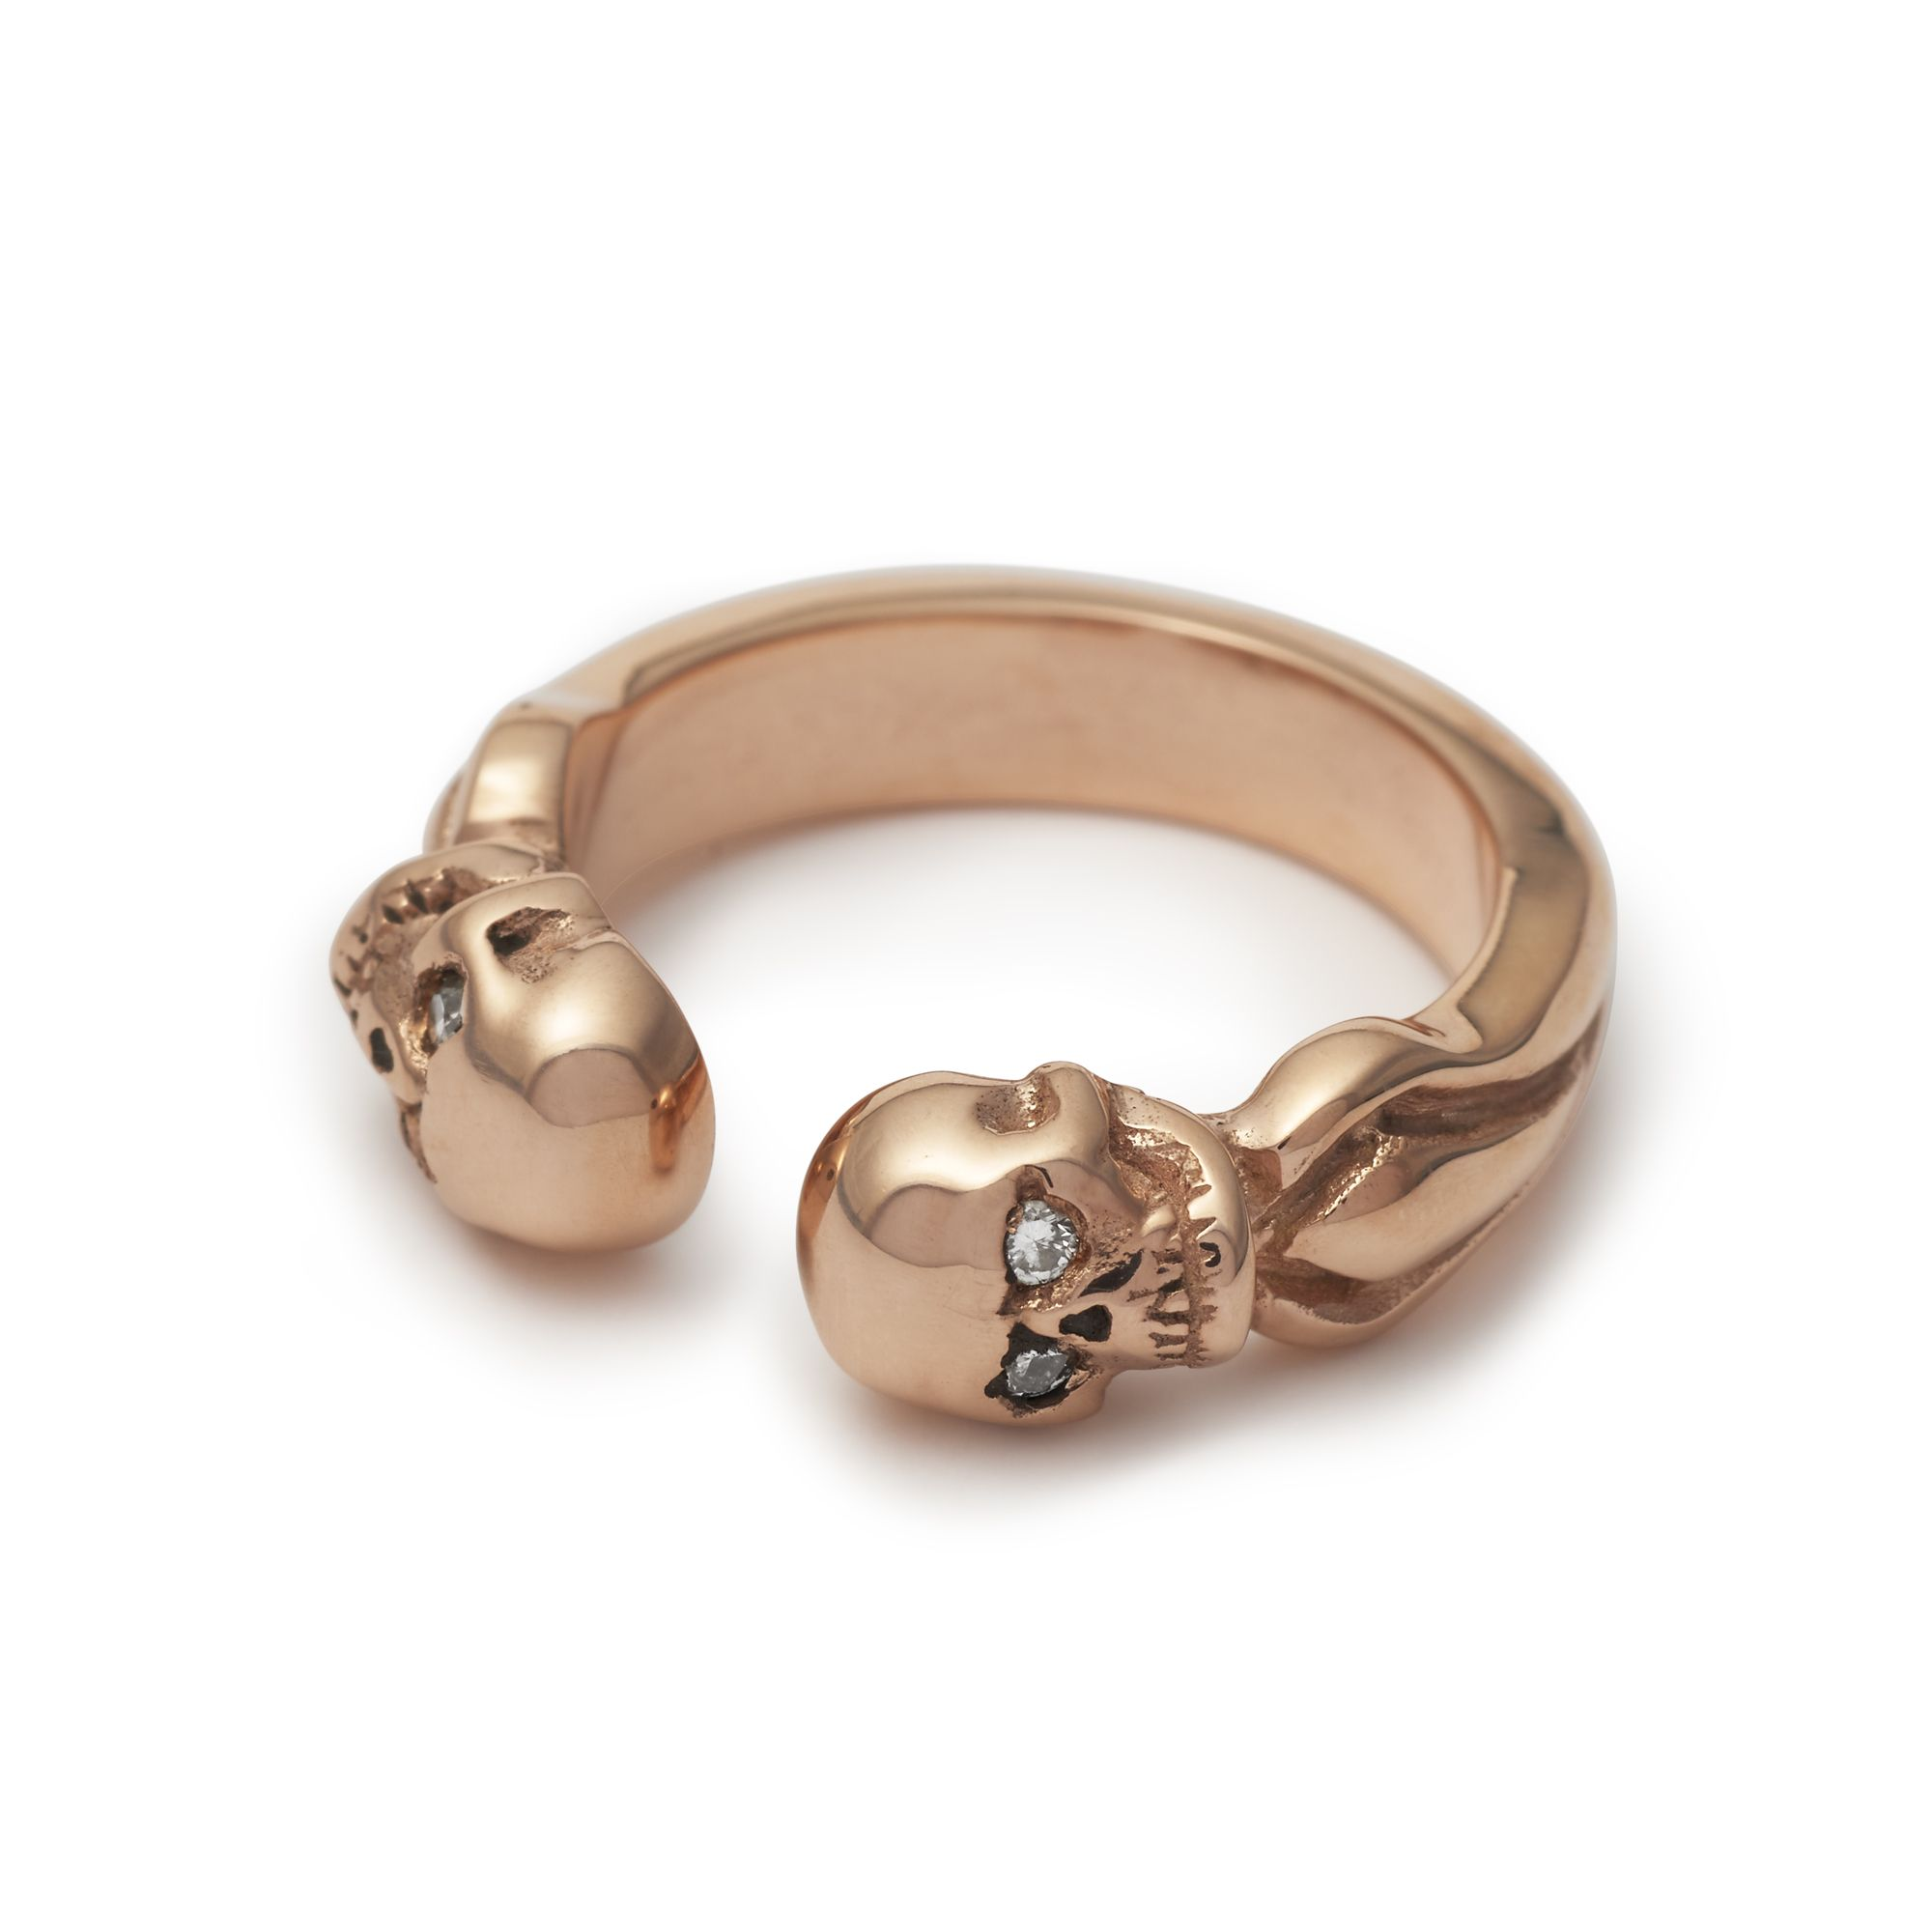 bd3b1ef168ffe The Great Frog custom 'Double Headed Skull' Ring, made in 9ct rose ...